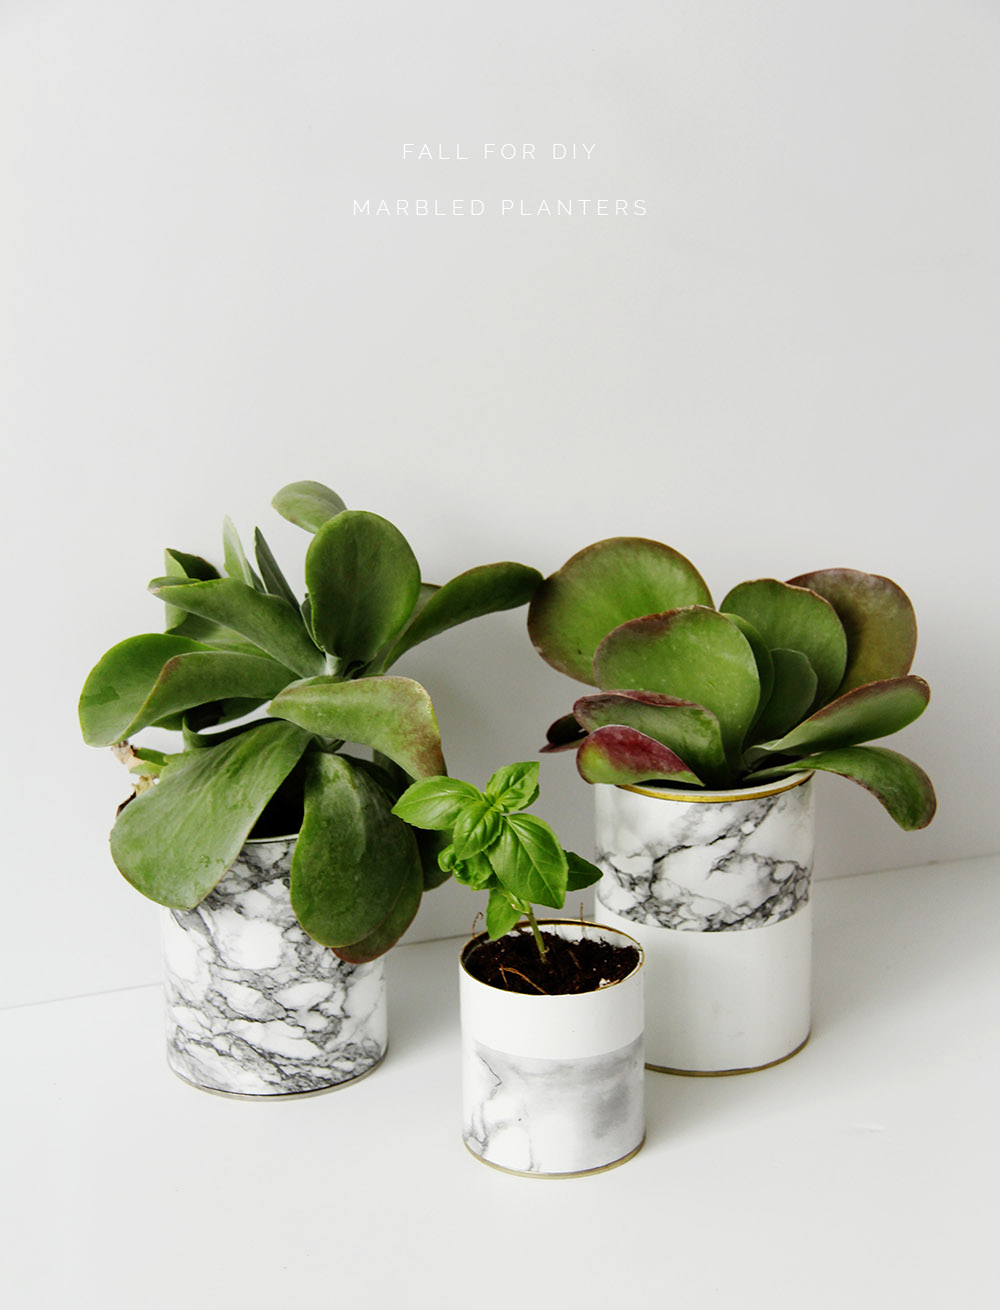 Diy Marble Planters Fall For Diy